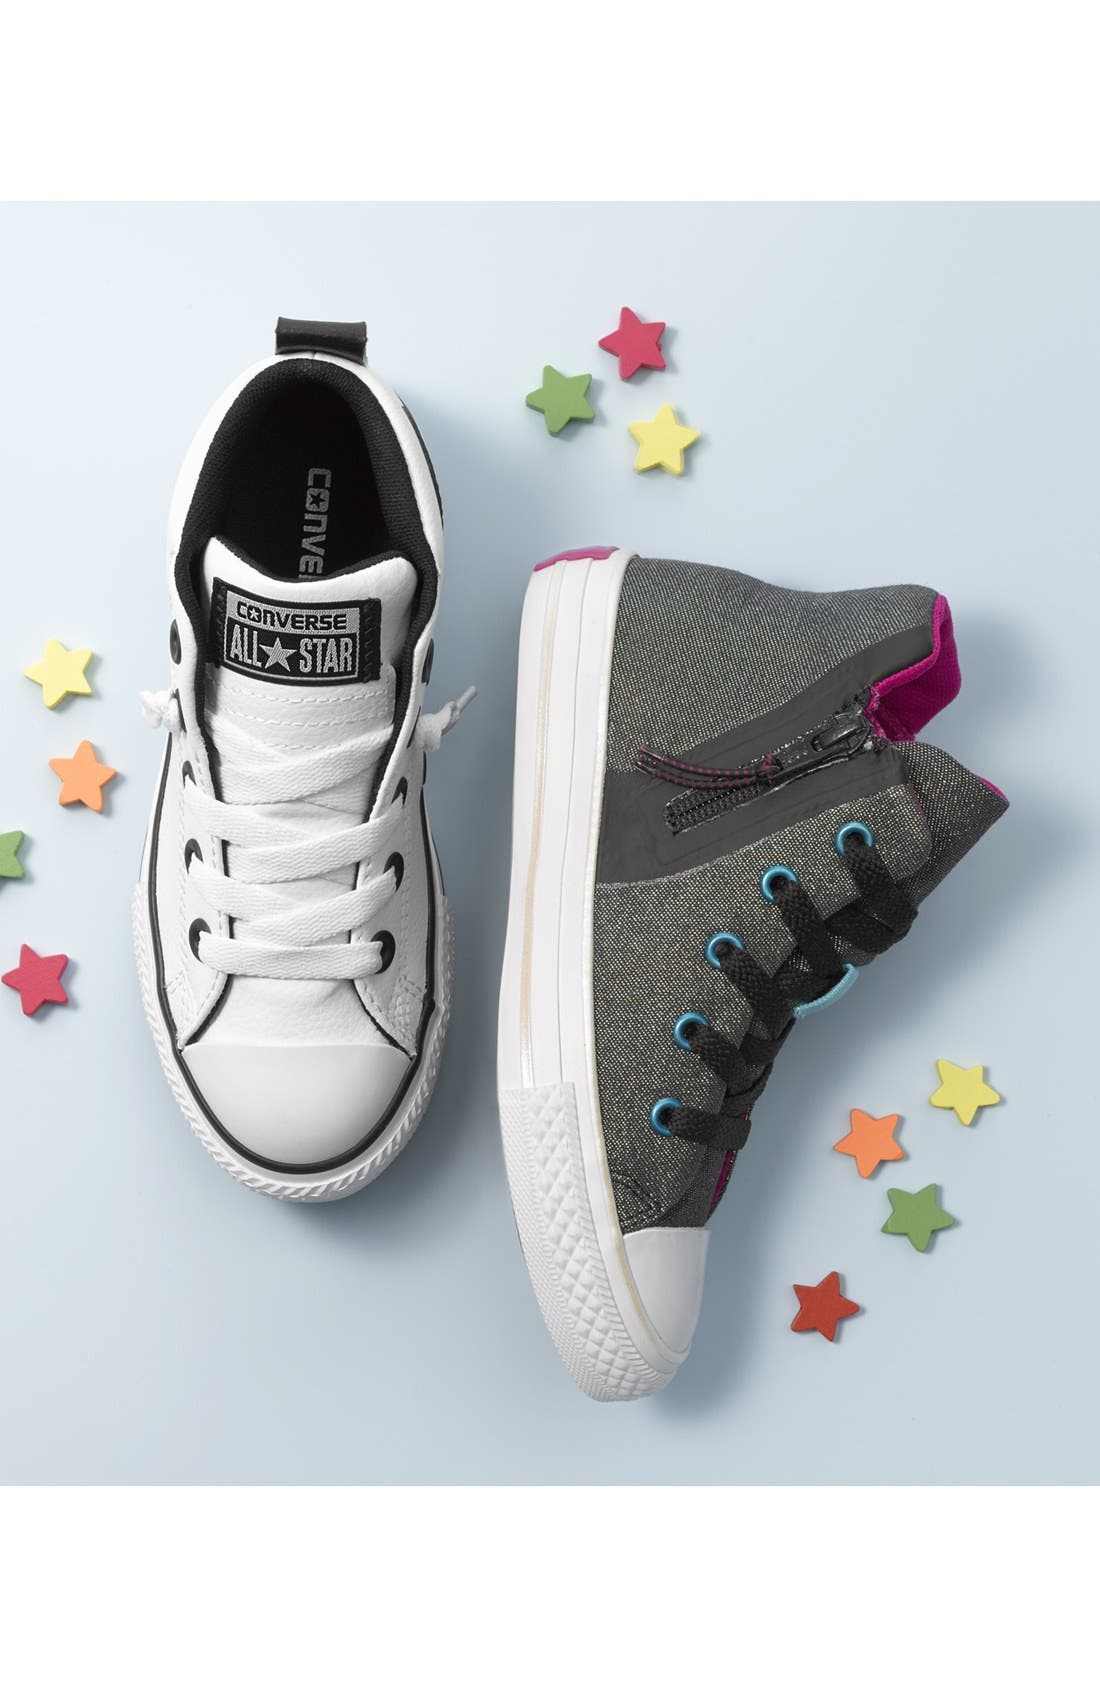 Chuck Taylor<sup>®</sup> All Star<sup>®</sup> Mid High Sneaker,                             Alternate thumbnail 5, color,                             102